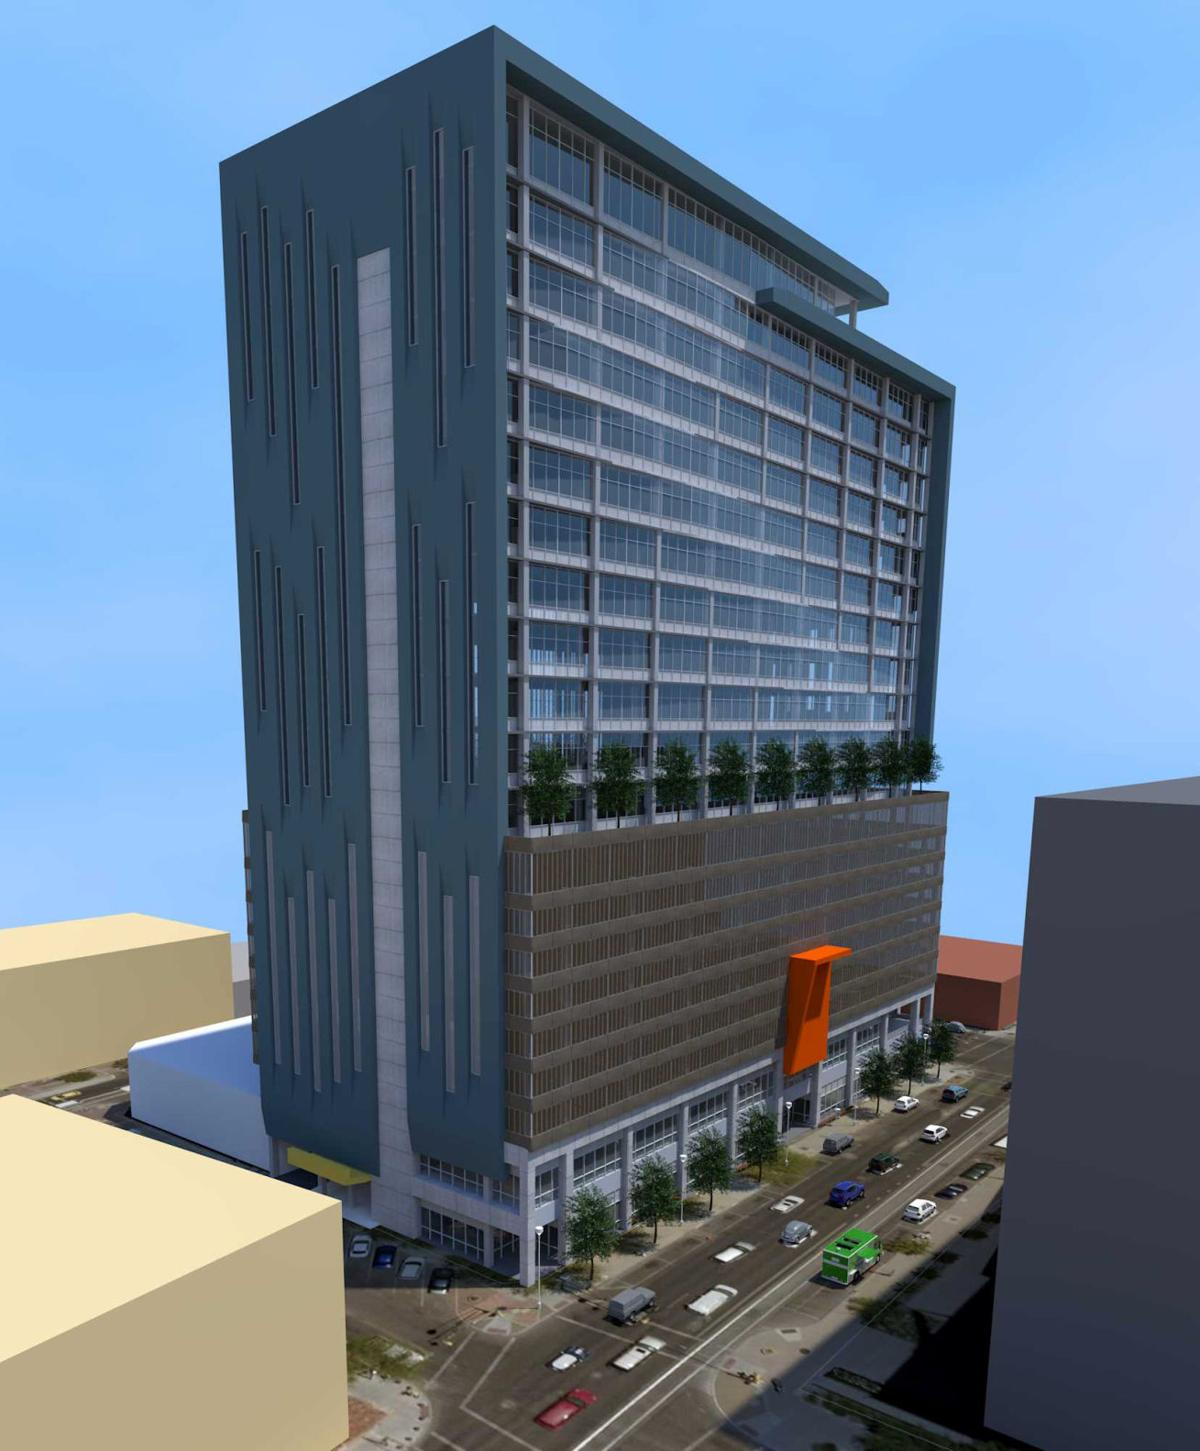 Rio Nuevo gives OK for new 20-story office building in